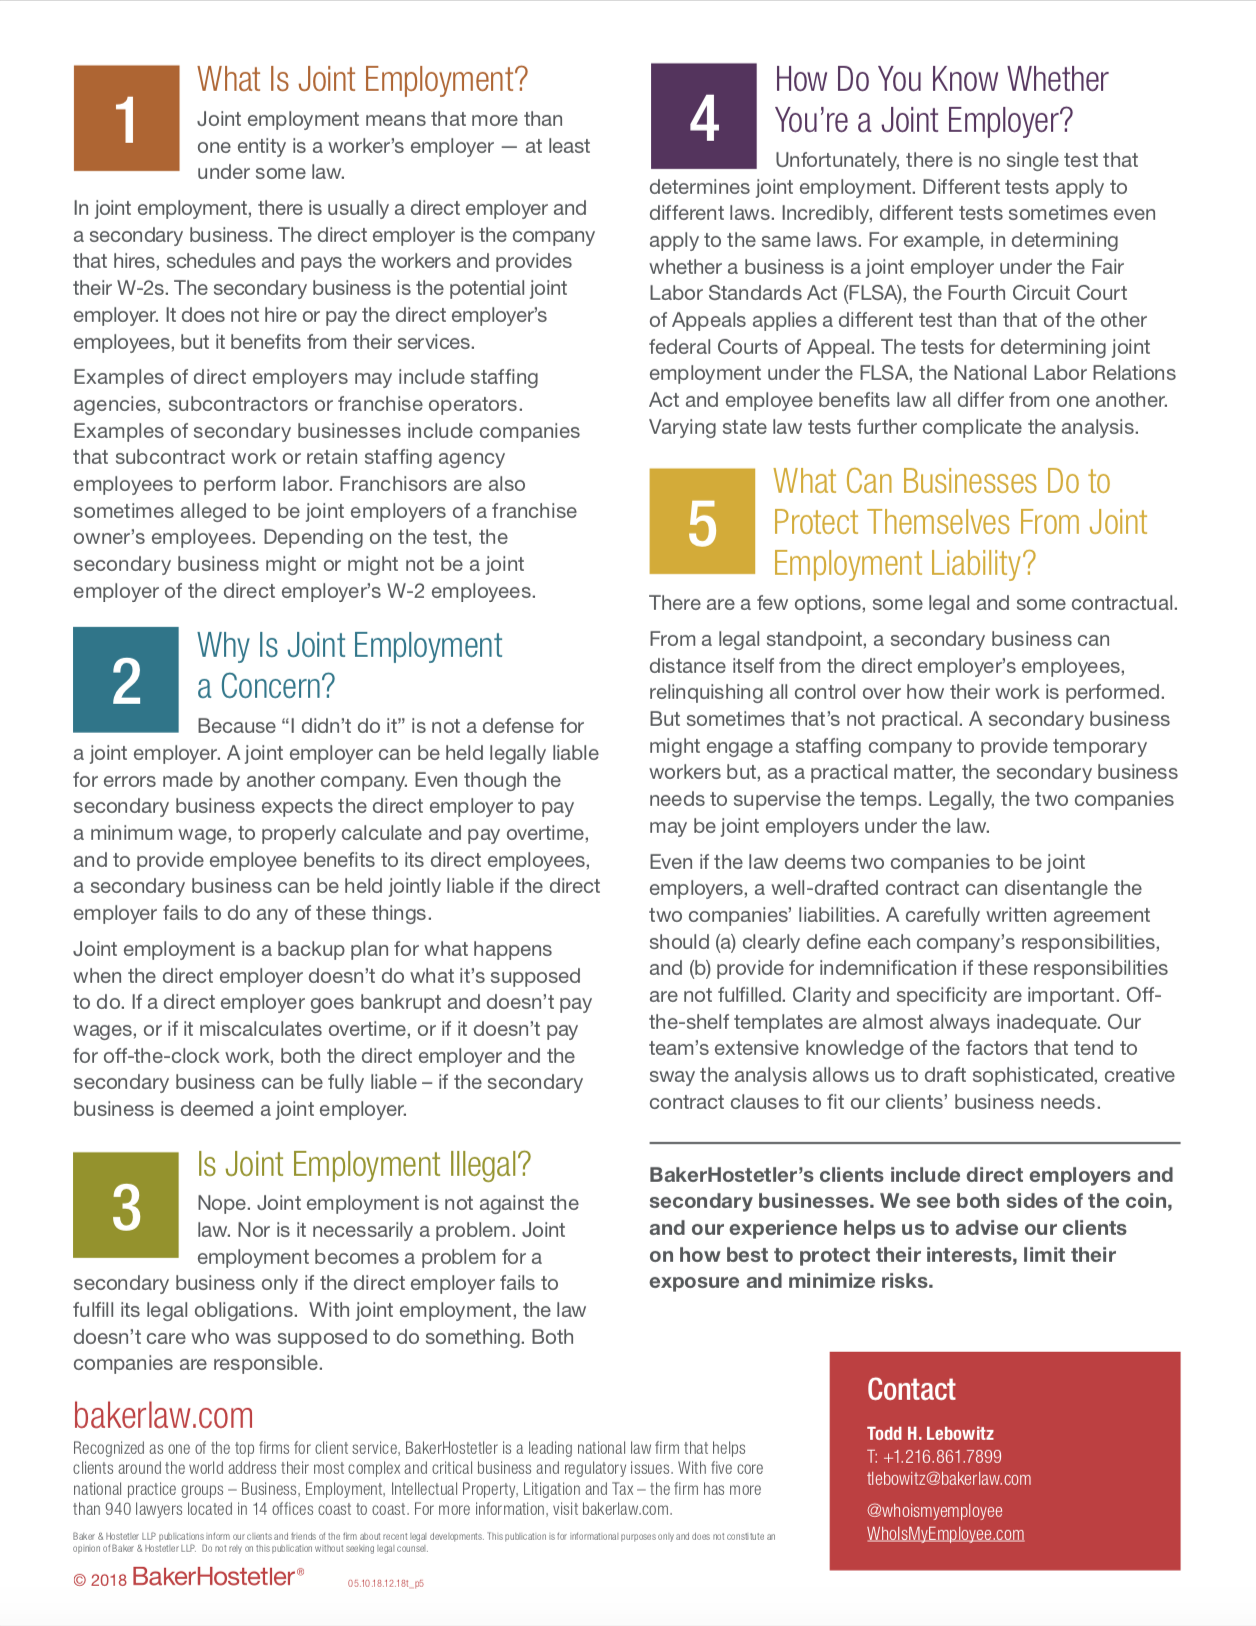 Five things You Should Know About Joint employment - page 1 screenshot